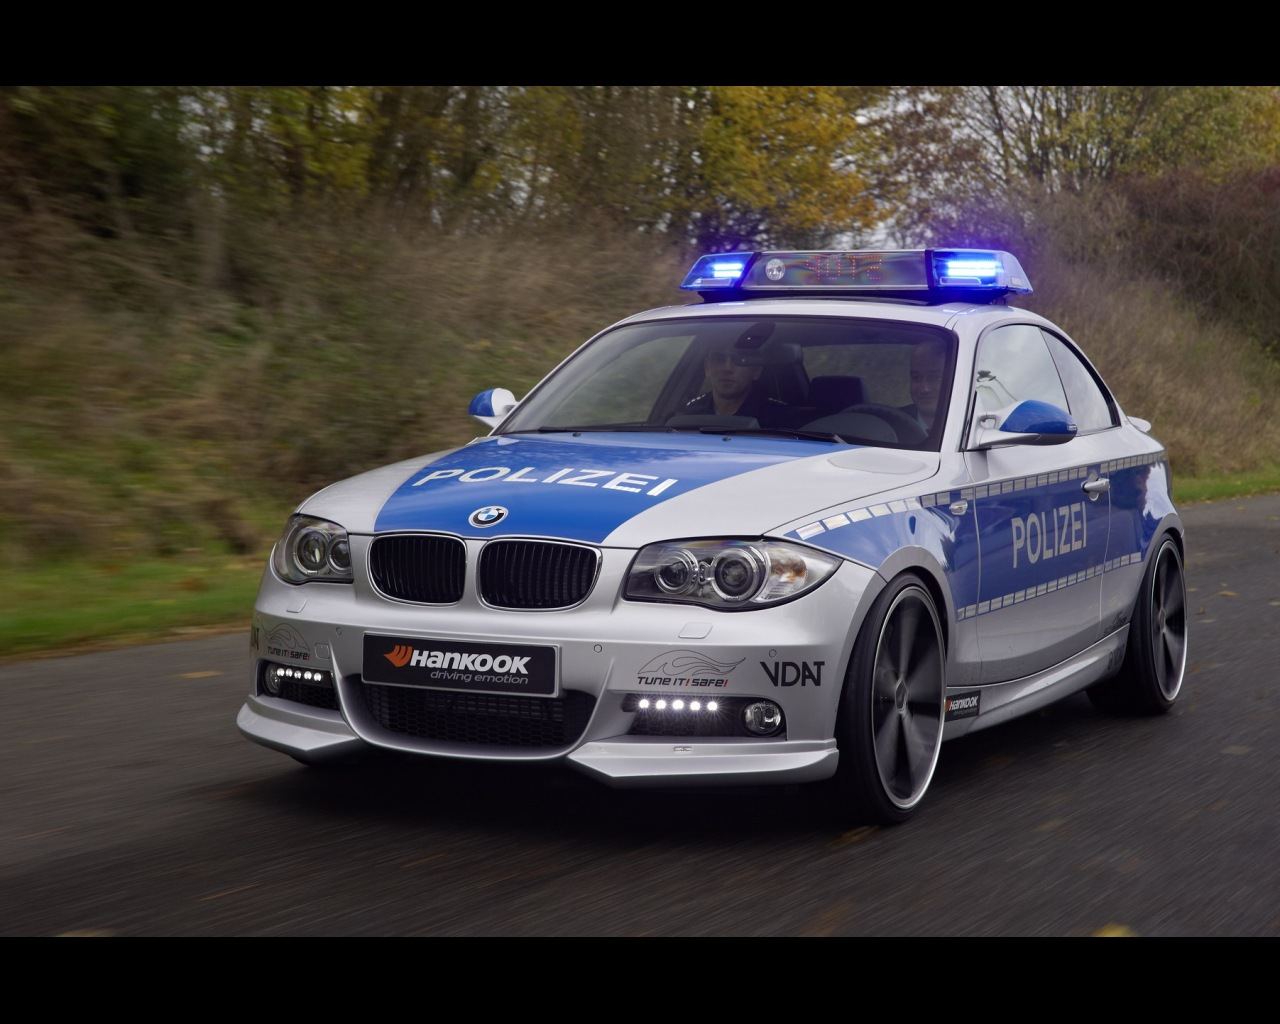 ac-schnitzer-bmw-123d-coupe-tune-it-safe-18.jpg